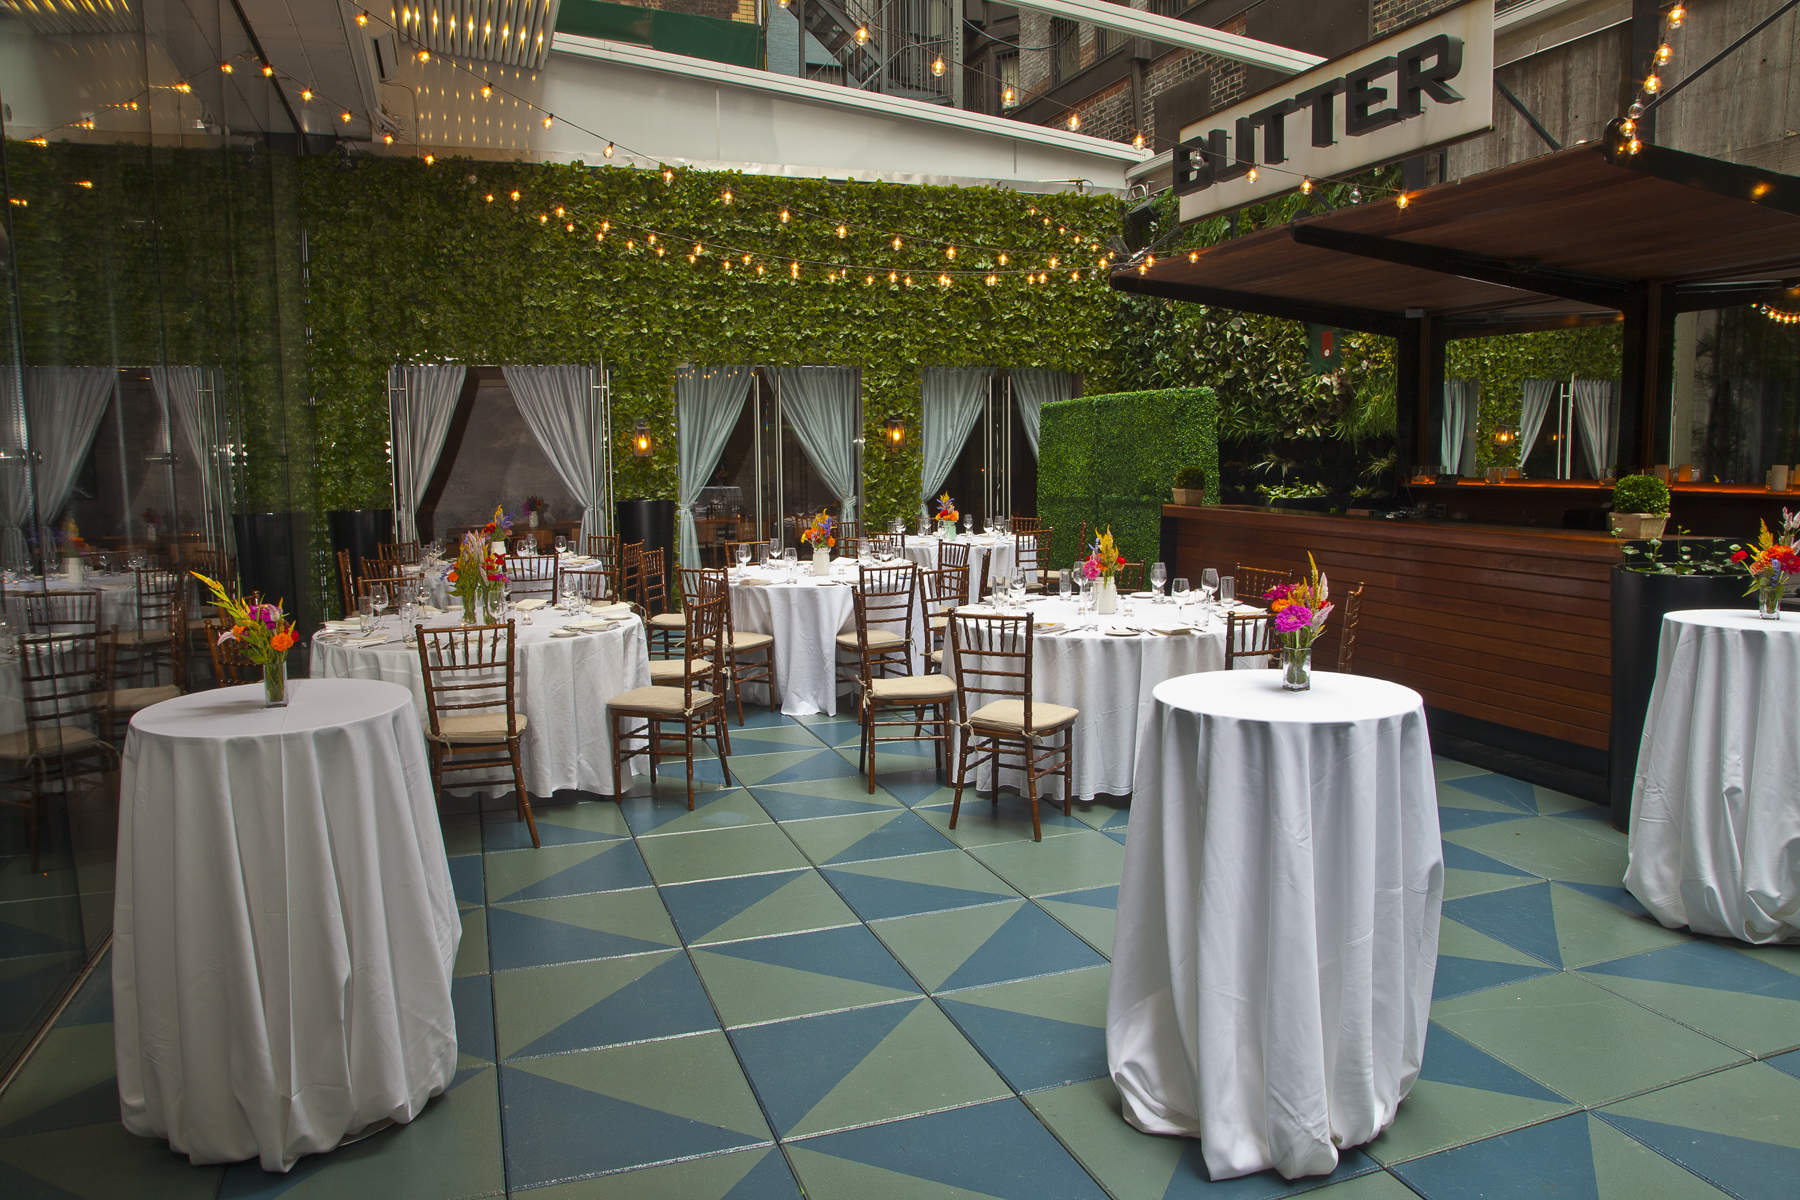 Garden event space at Butter Midtown in New York City, NYC, NY/NJ Area